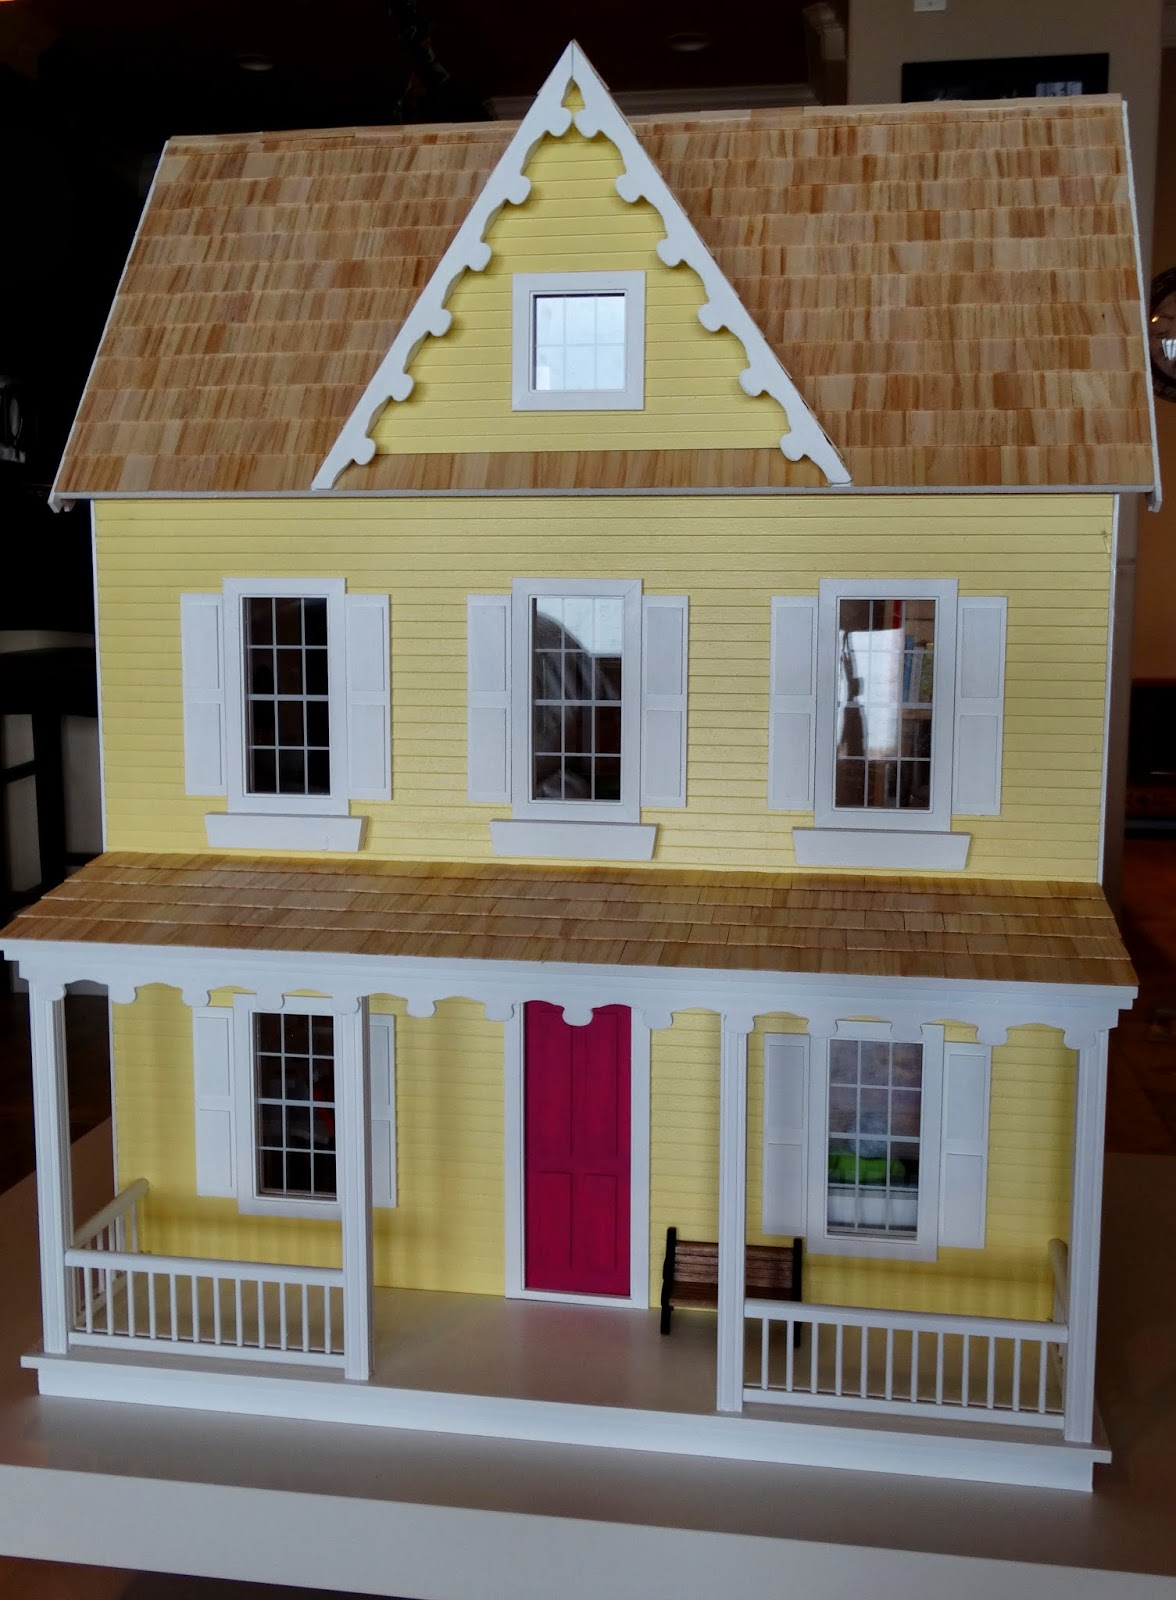 Scrapbook paper dollhouse wallpaper - The Wallpaper On The Inside Is Scrapbook Paper That I Secured With Spray Adhesive I Wouldn T Say That This Is The Best Way To Paper The Walls But It Works